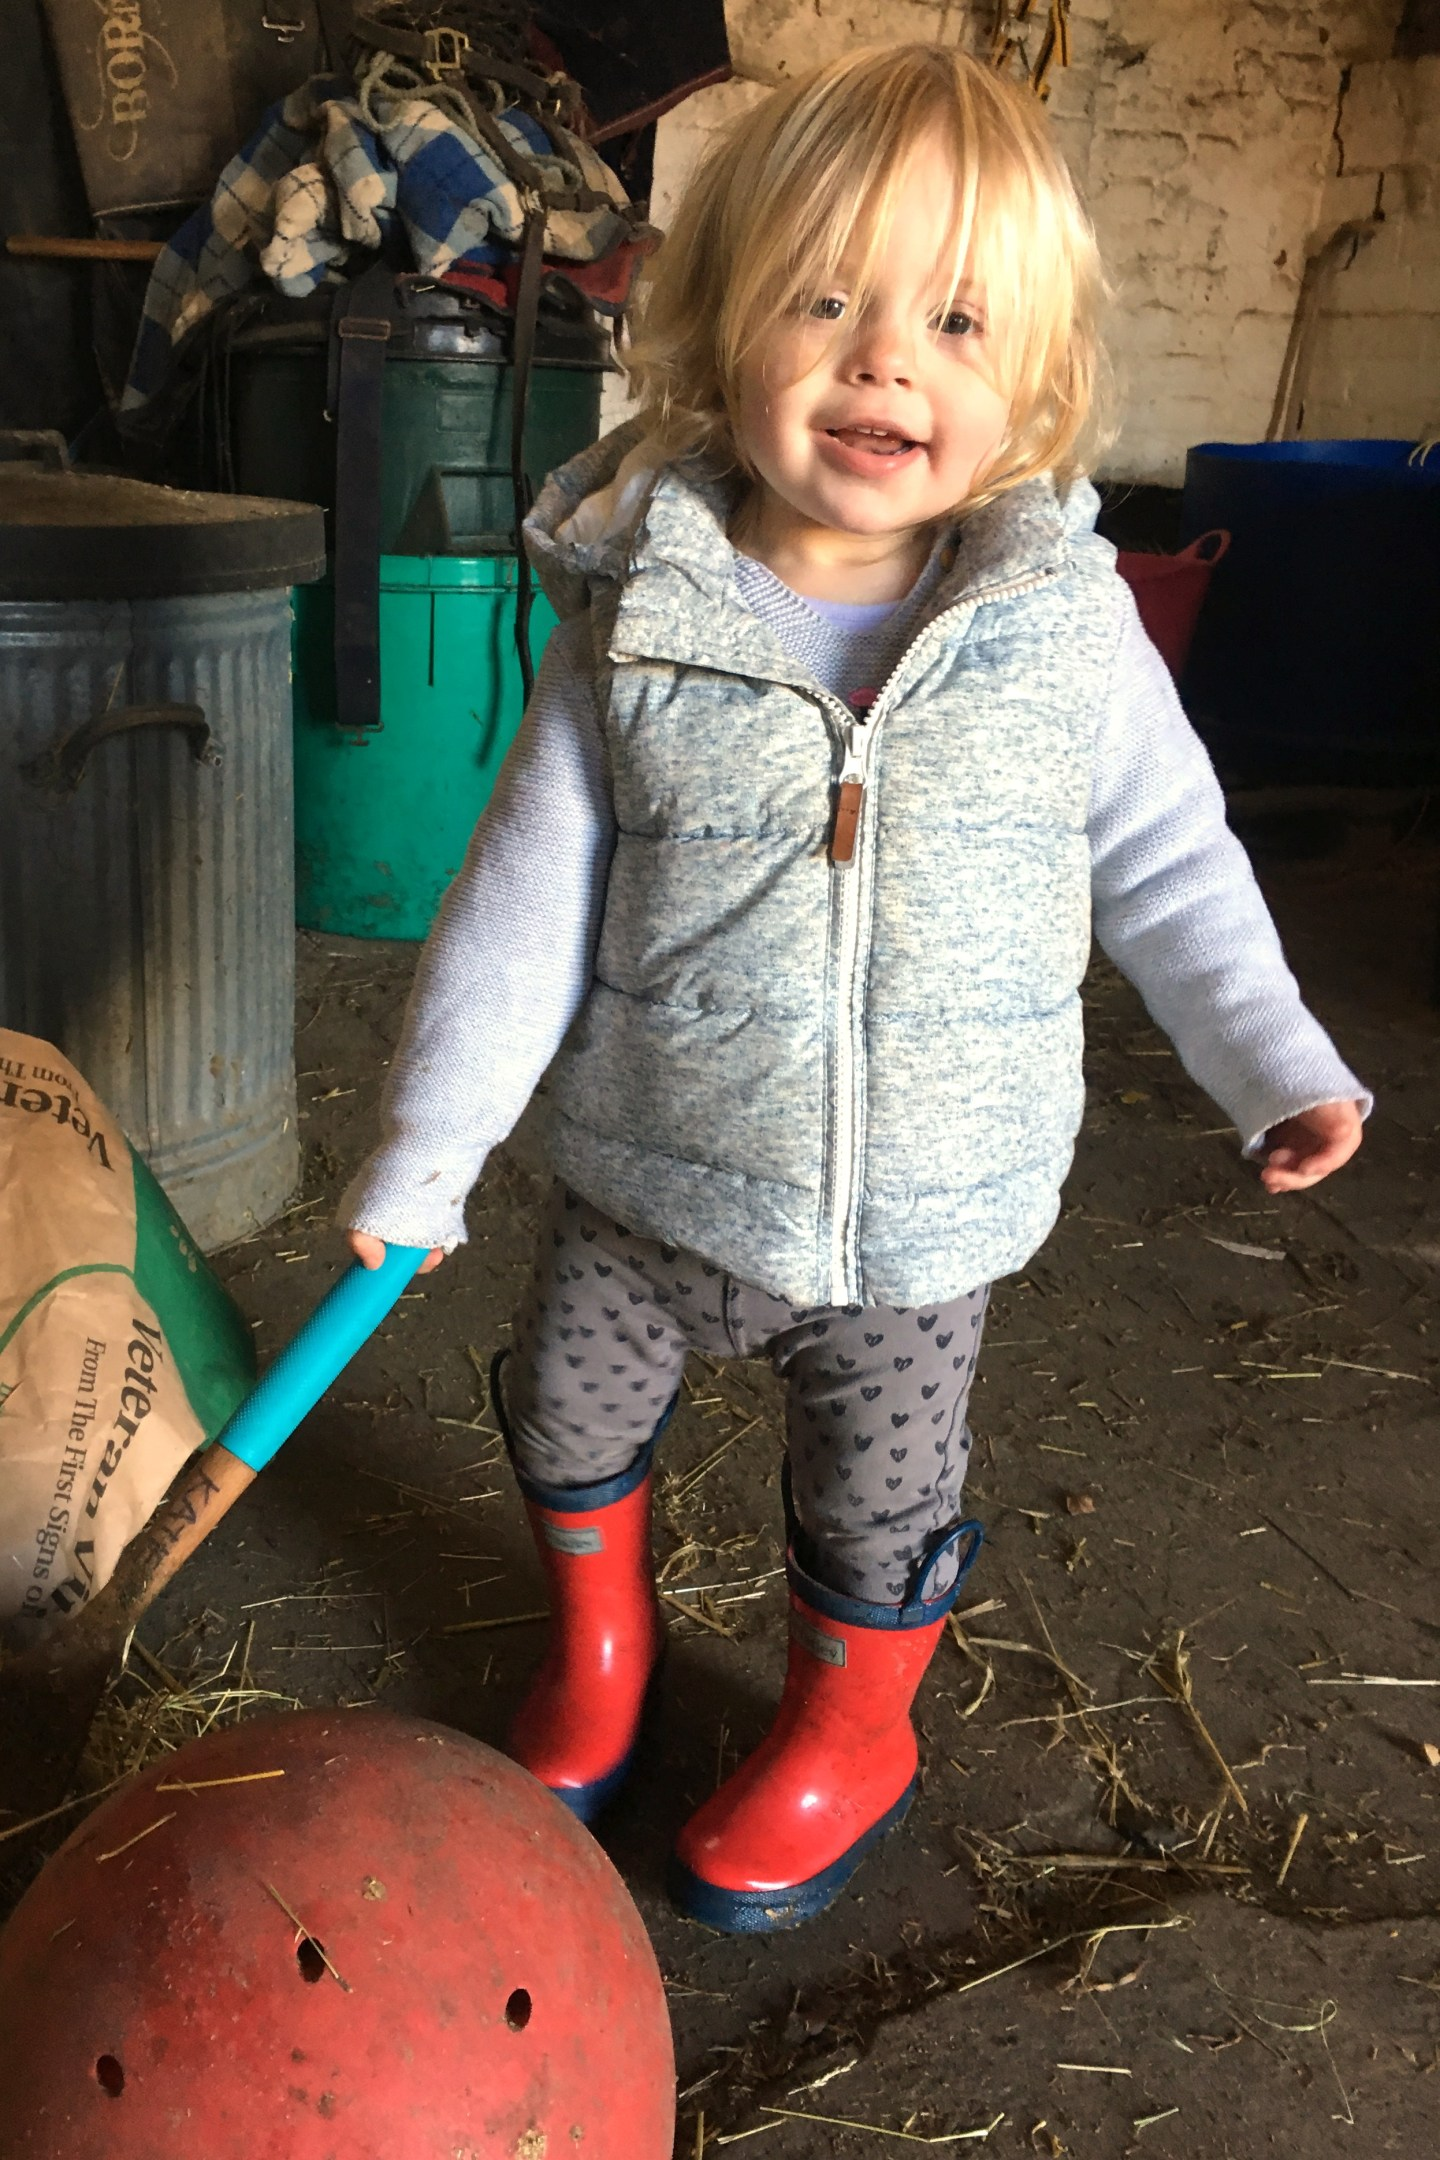 22 months old girl, helping make feeds at the stables